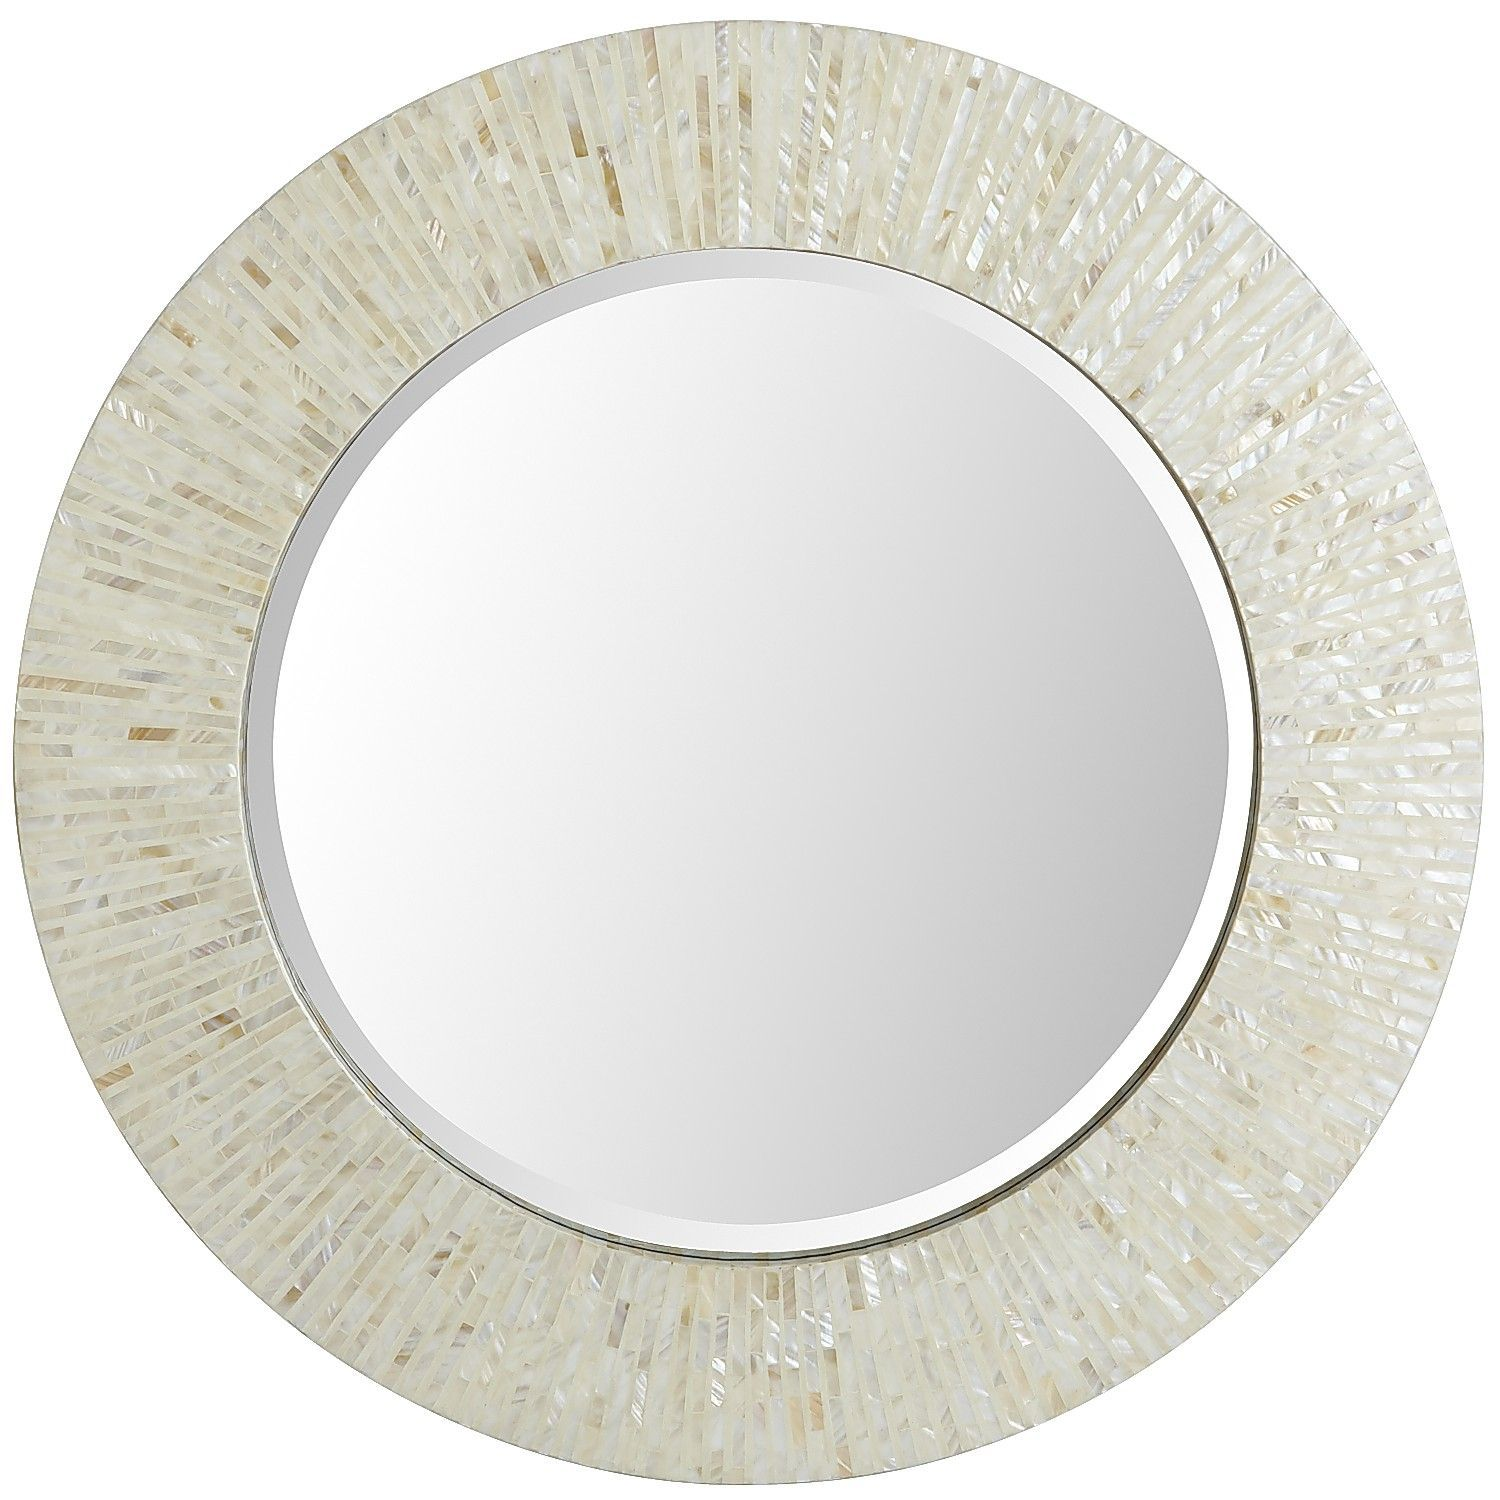 Pier 1 ivory mother of pearl mirror round